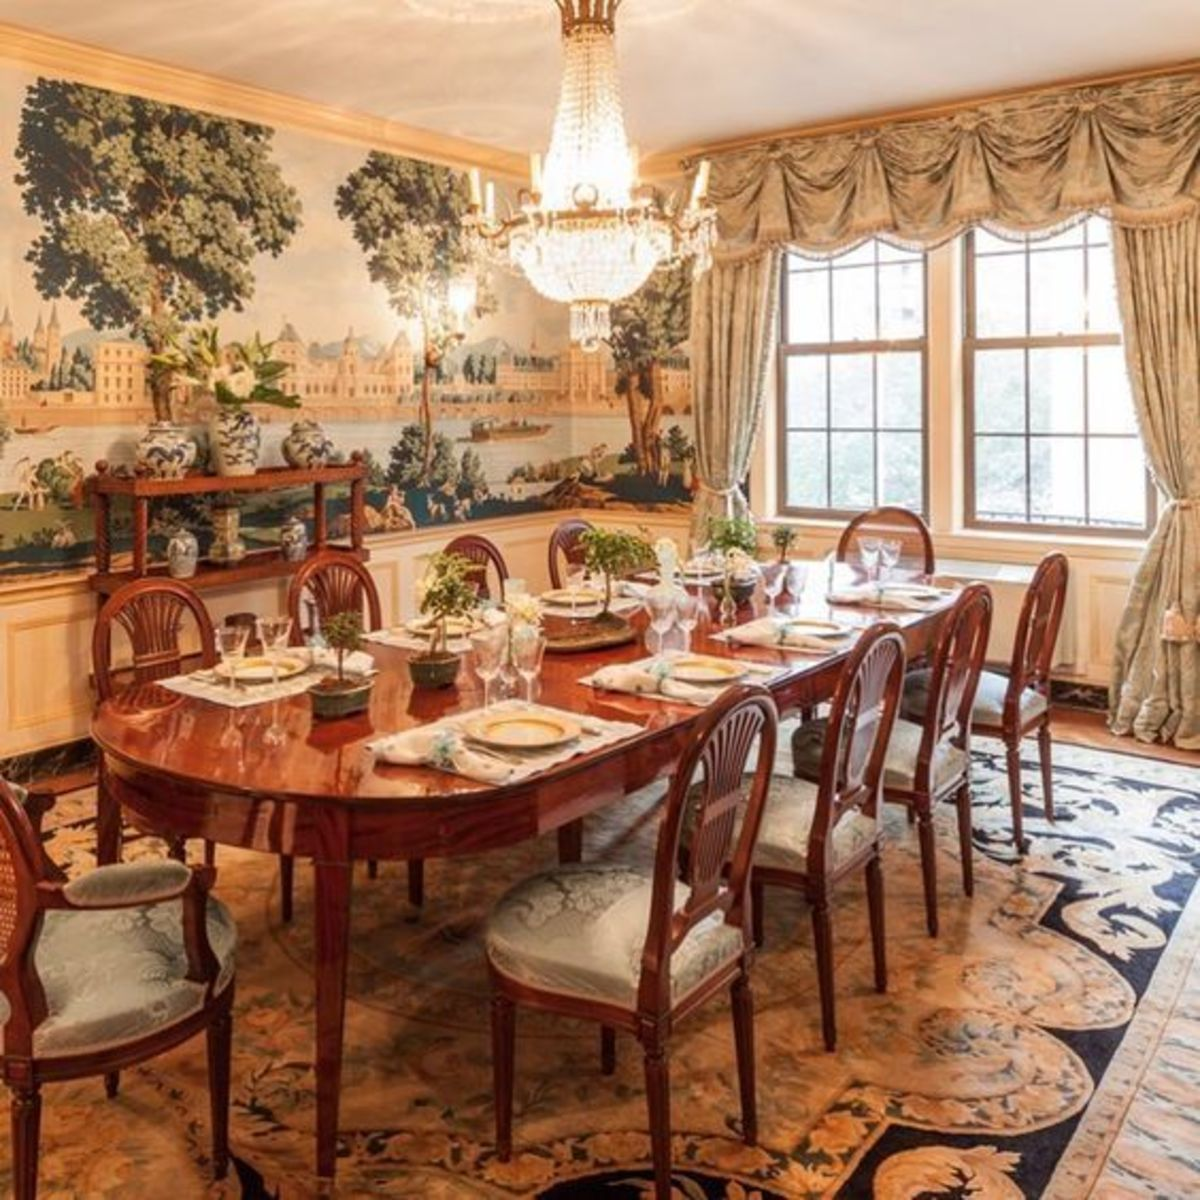 Stunning curtains and an antique Oriental rug gives the dining room a traditional feel.